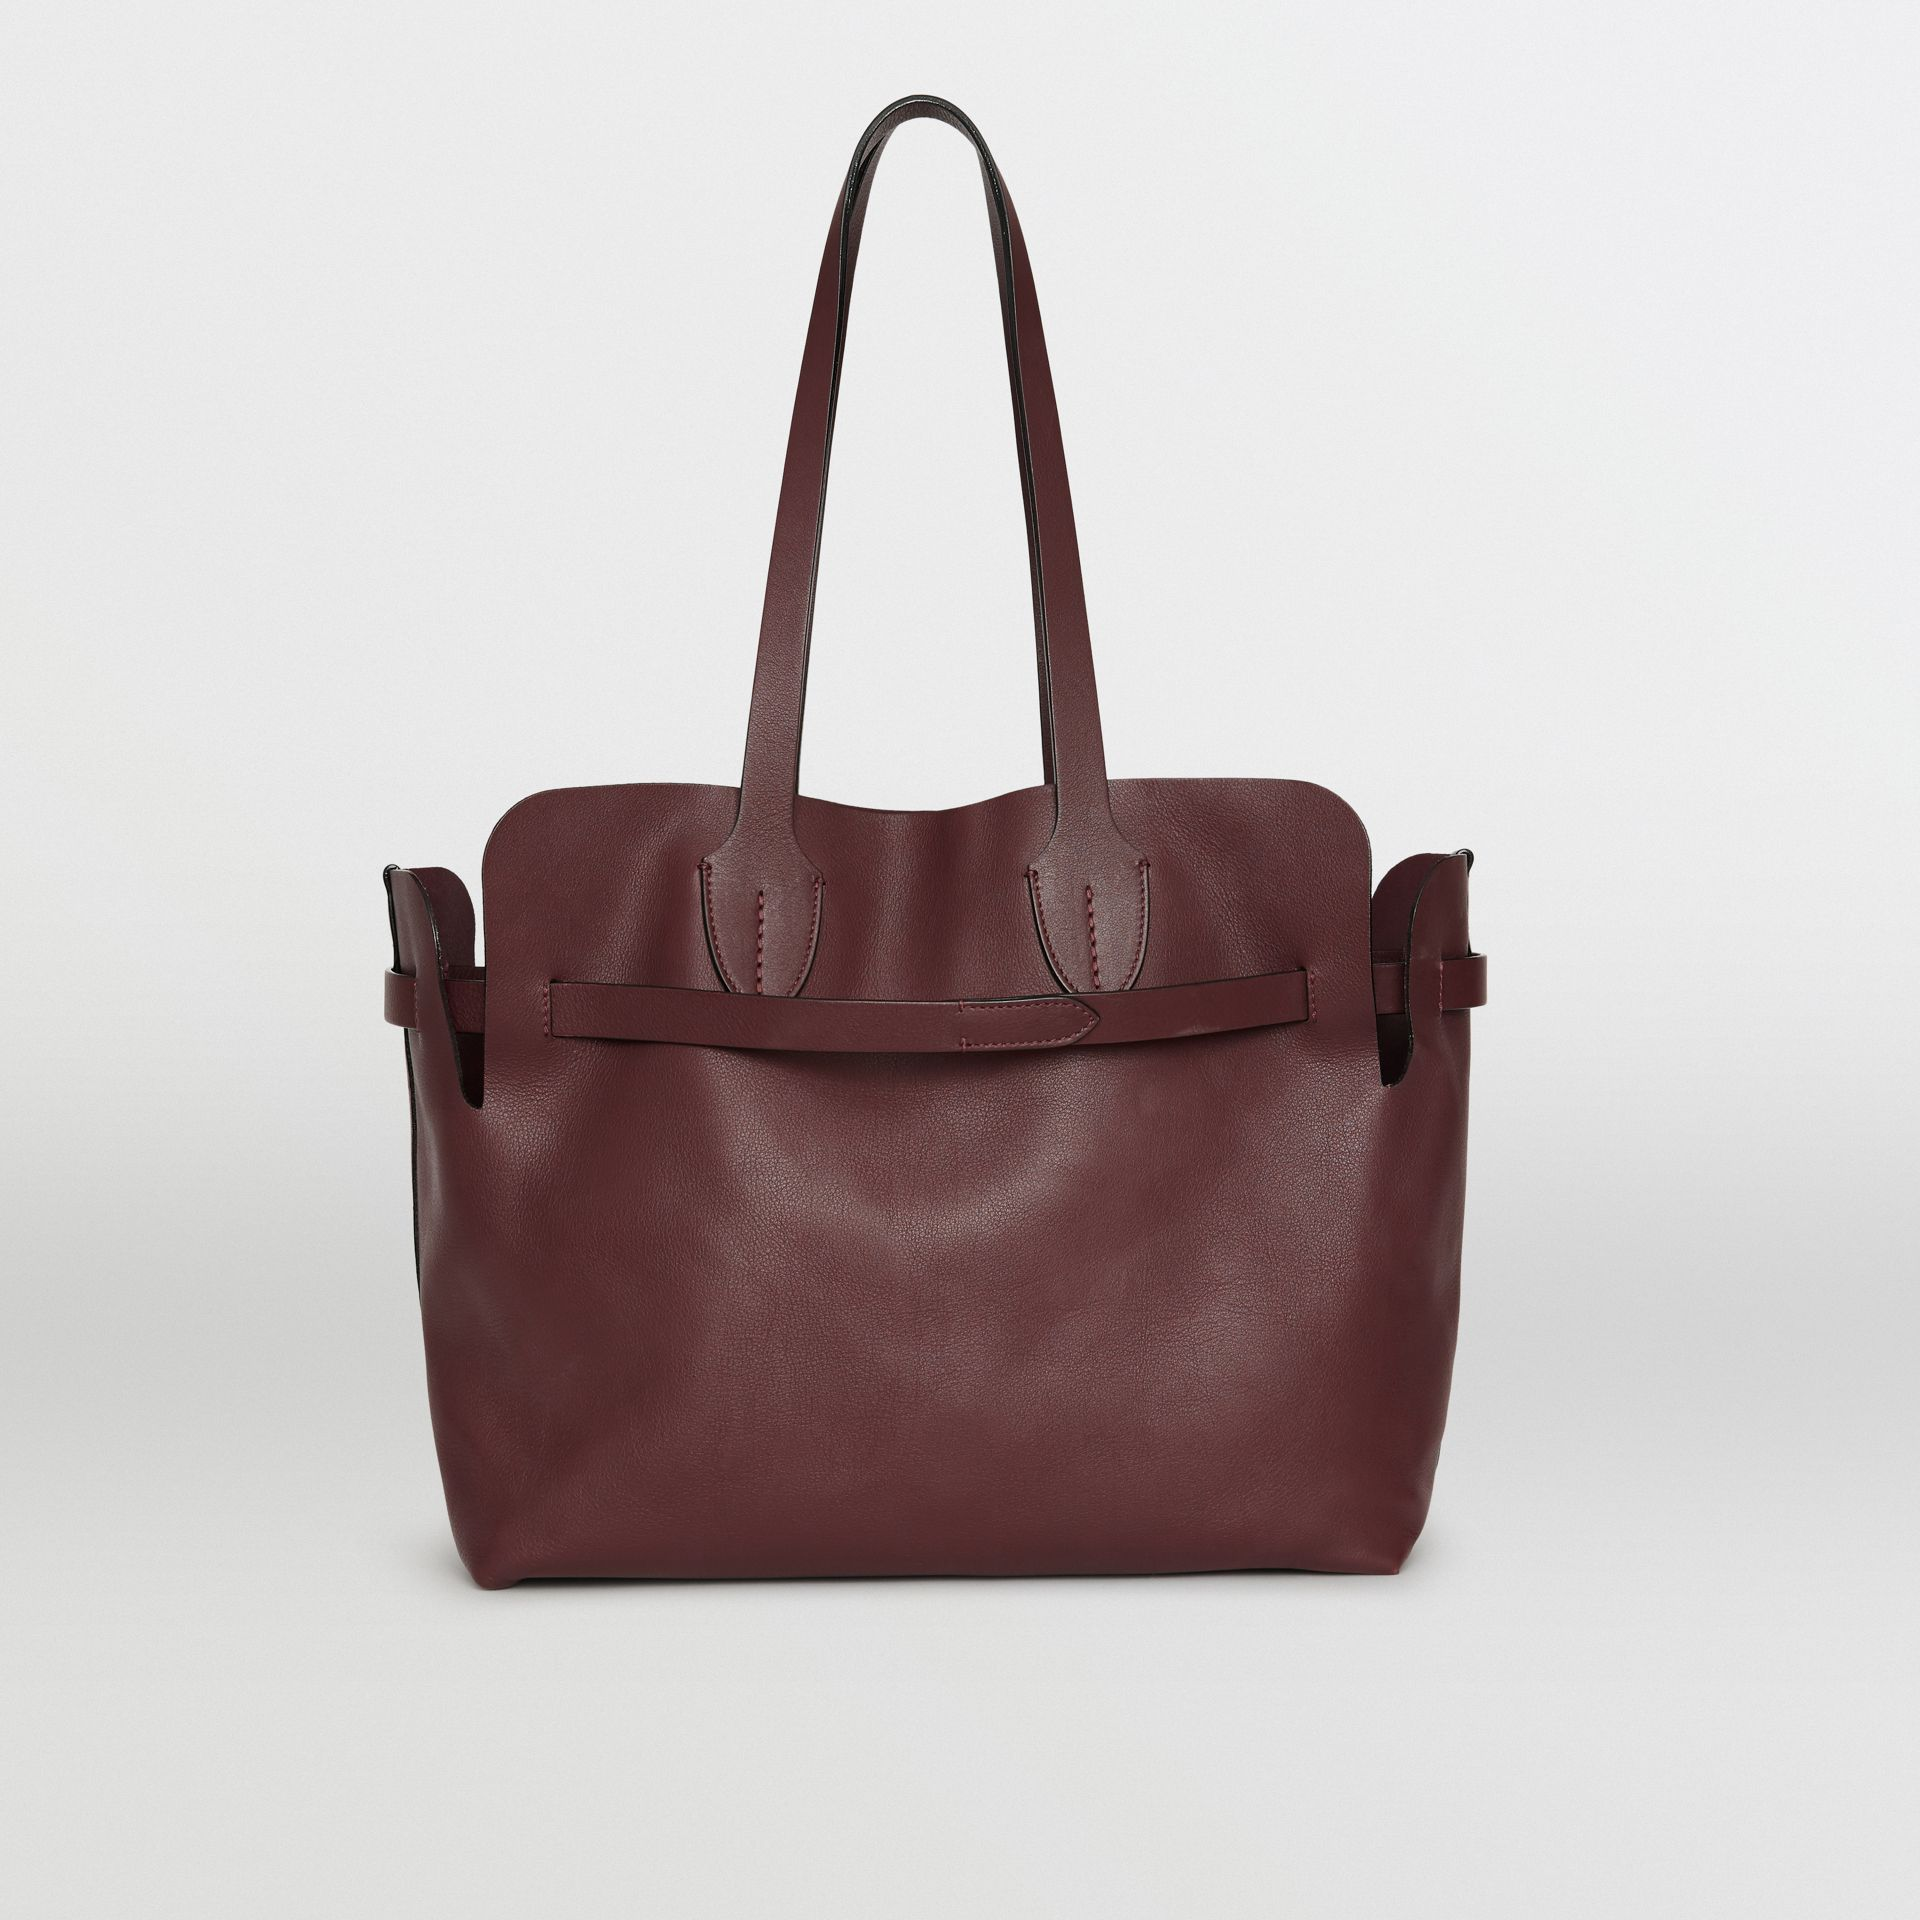 Sac The Belt moyen en cuir doux (Bordeaux Intense) - Femme | Burberry - photo de la galerie 5